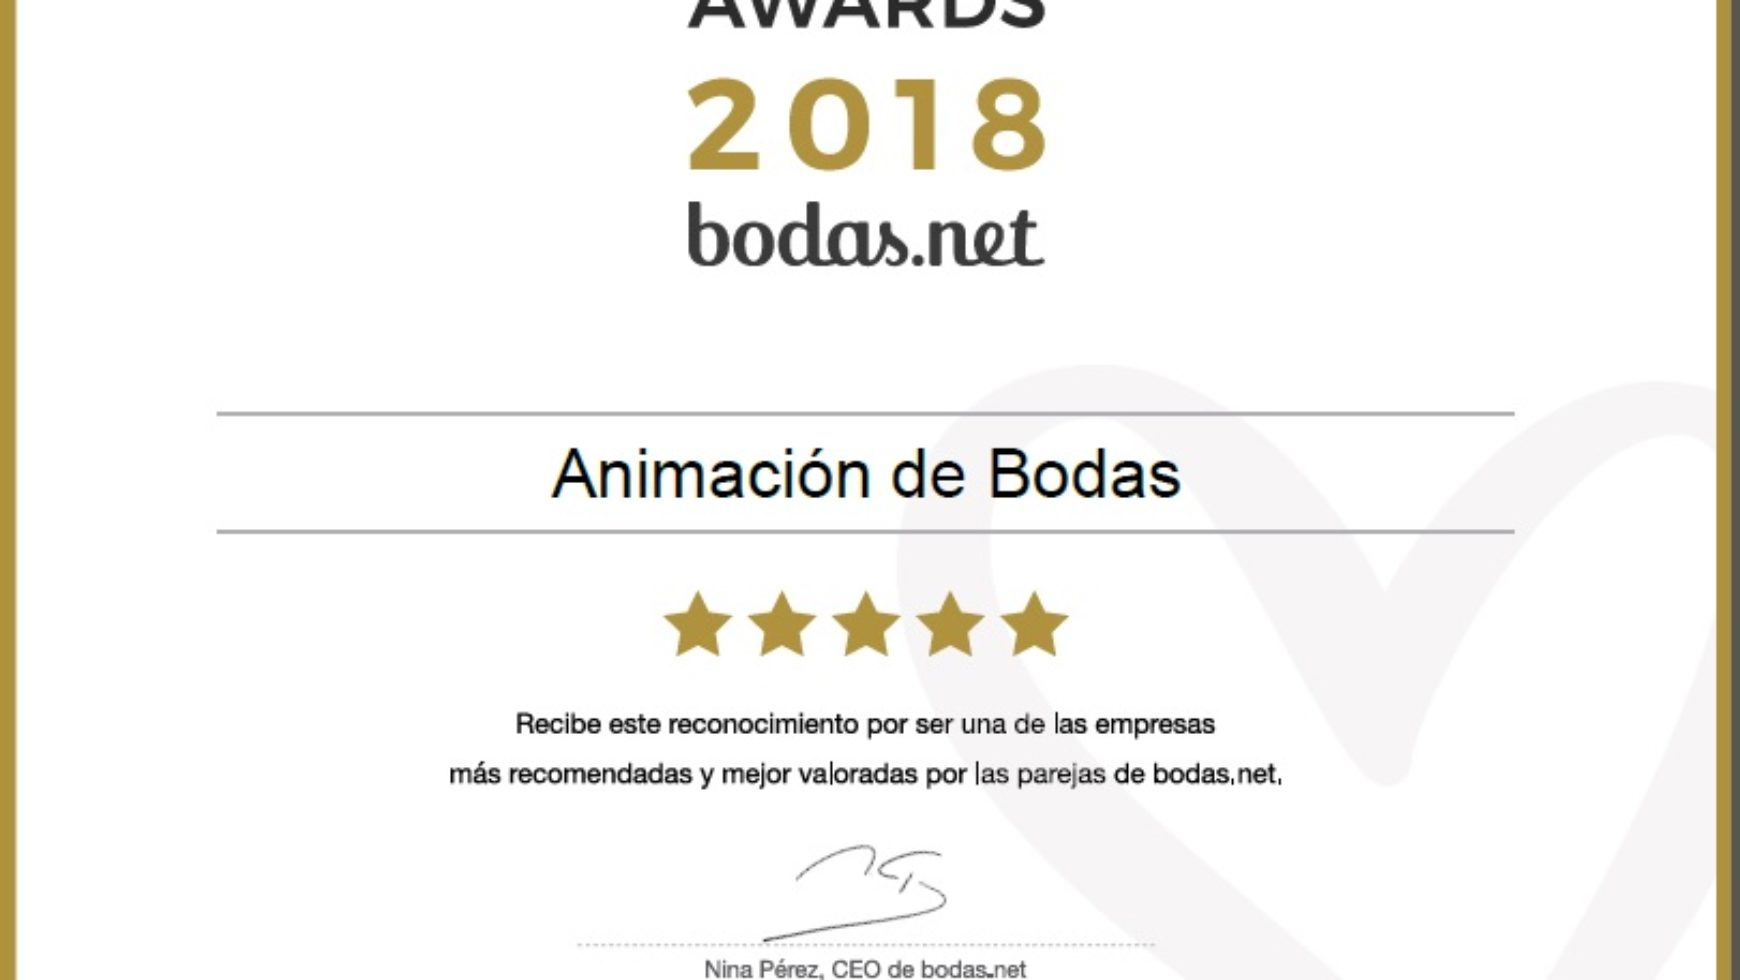 Wedding awards 2018 Bodas.net; ¡¡ www.animacionloca.com campeones un año más!!